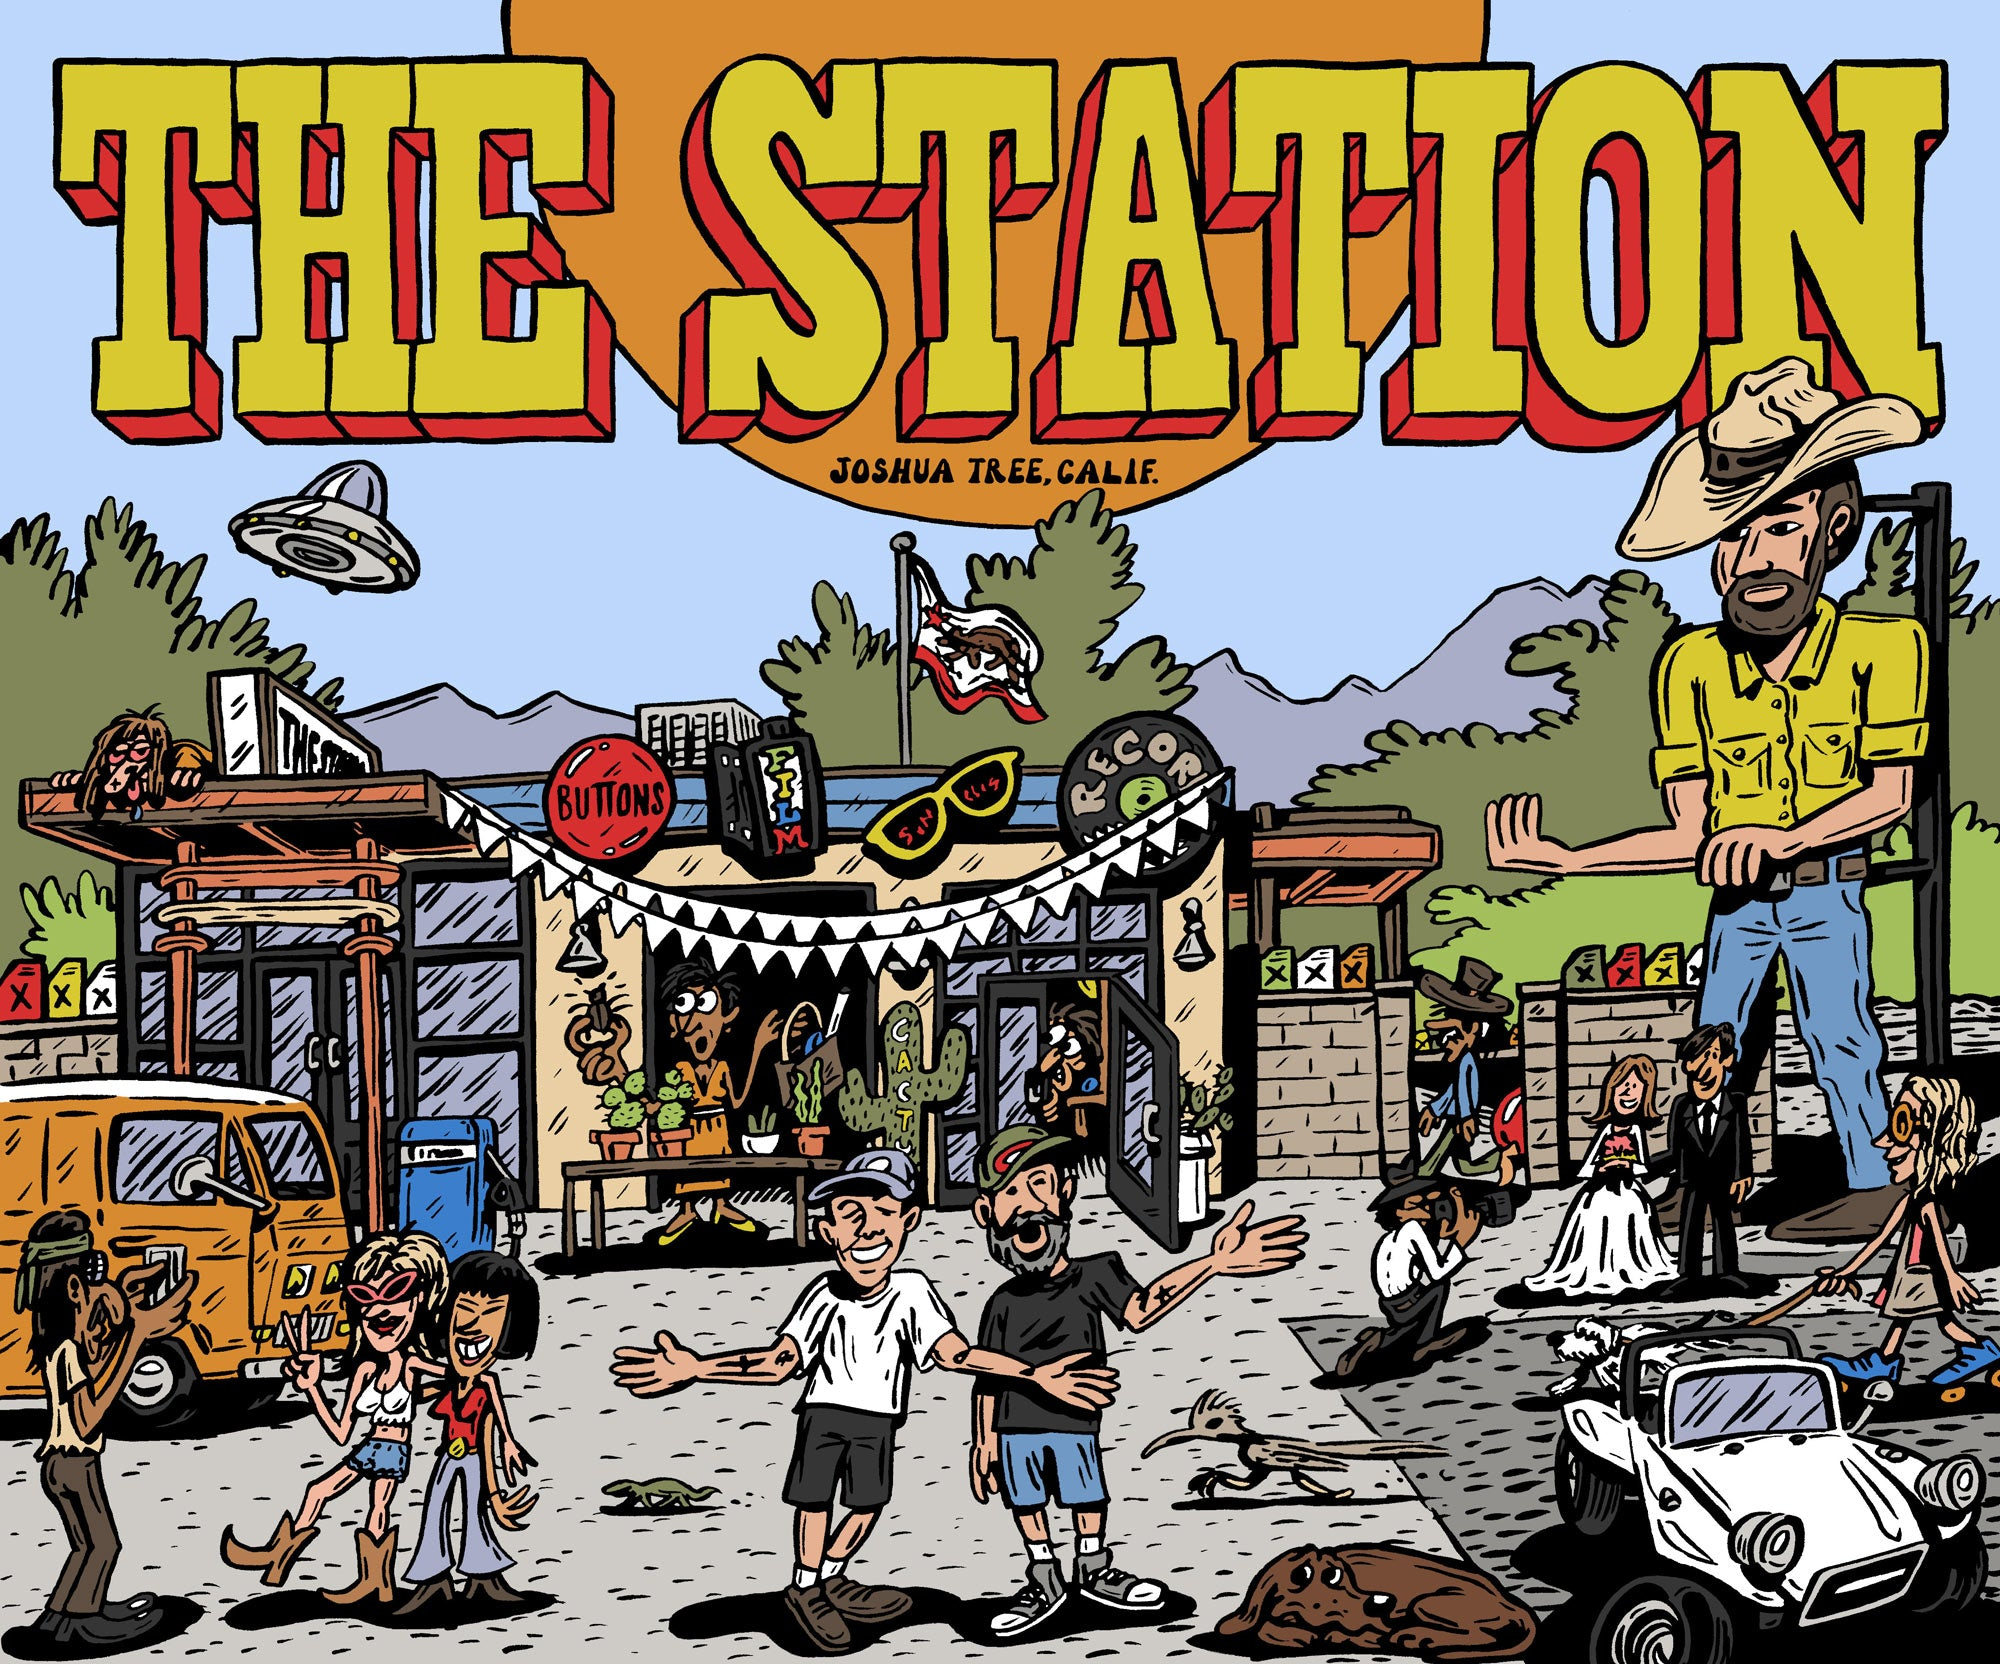 =The Station